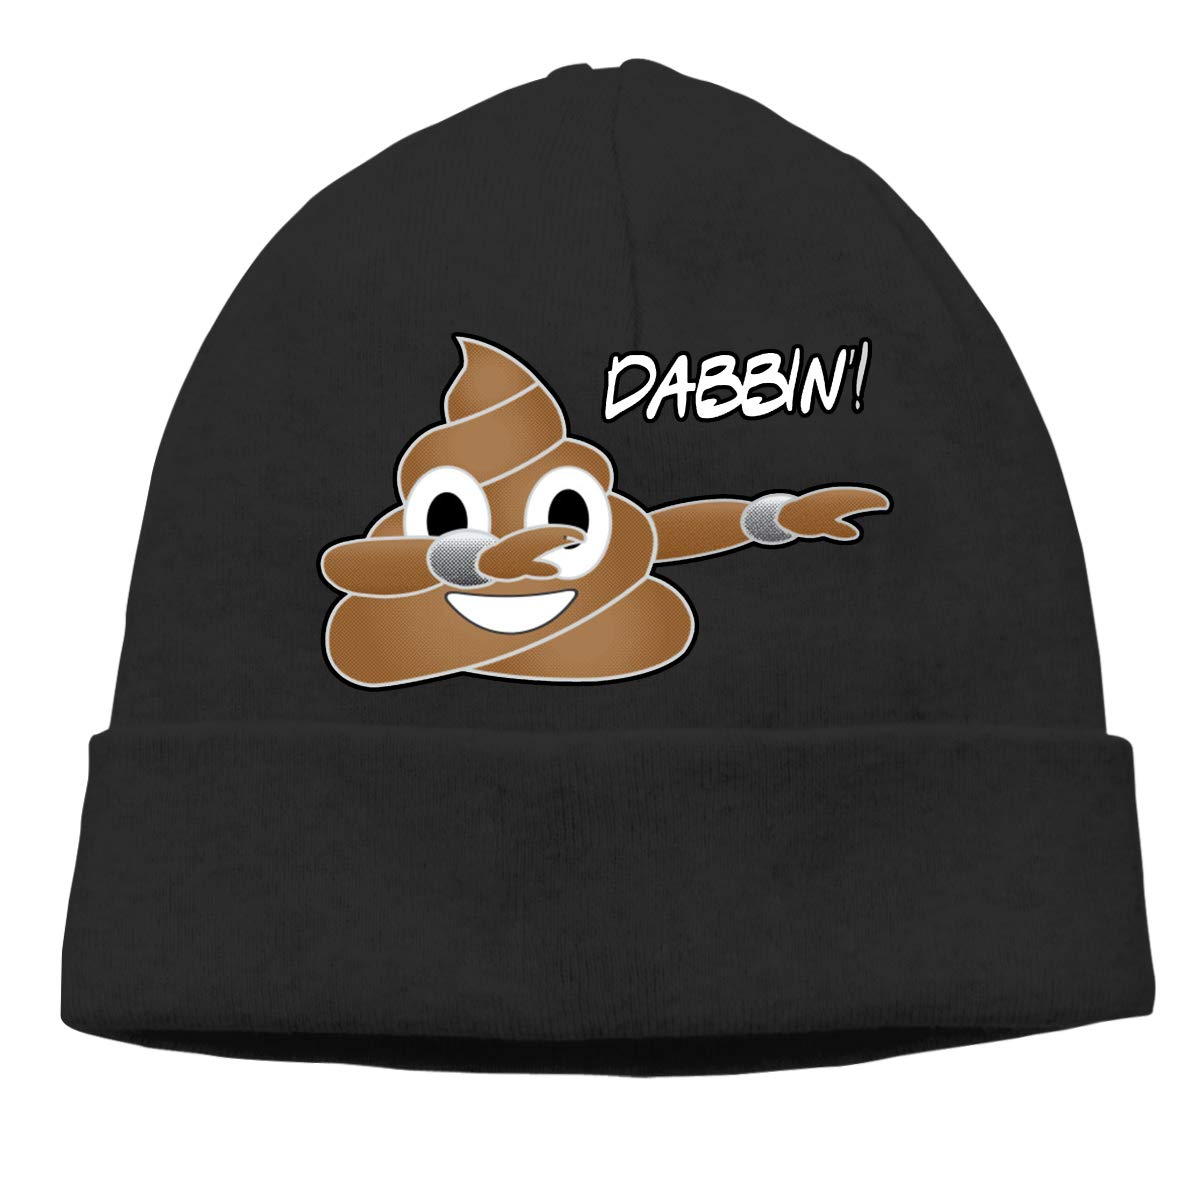 0d95bdfbb4594 Funny Dabbing Poop Emoji Beanie Hat Hipster Toboggan Hat Winter Hats Warm  Hat Beanies for Men and Women at Amazon Men s Clothing store